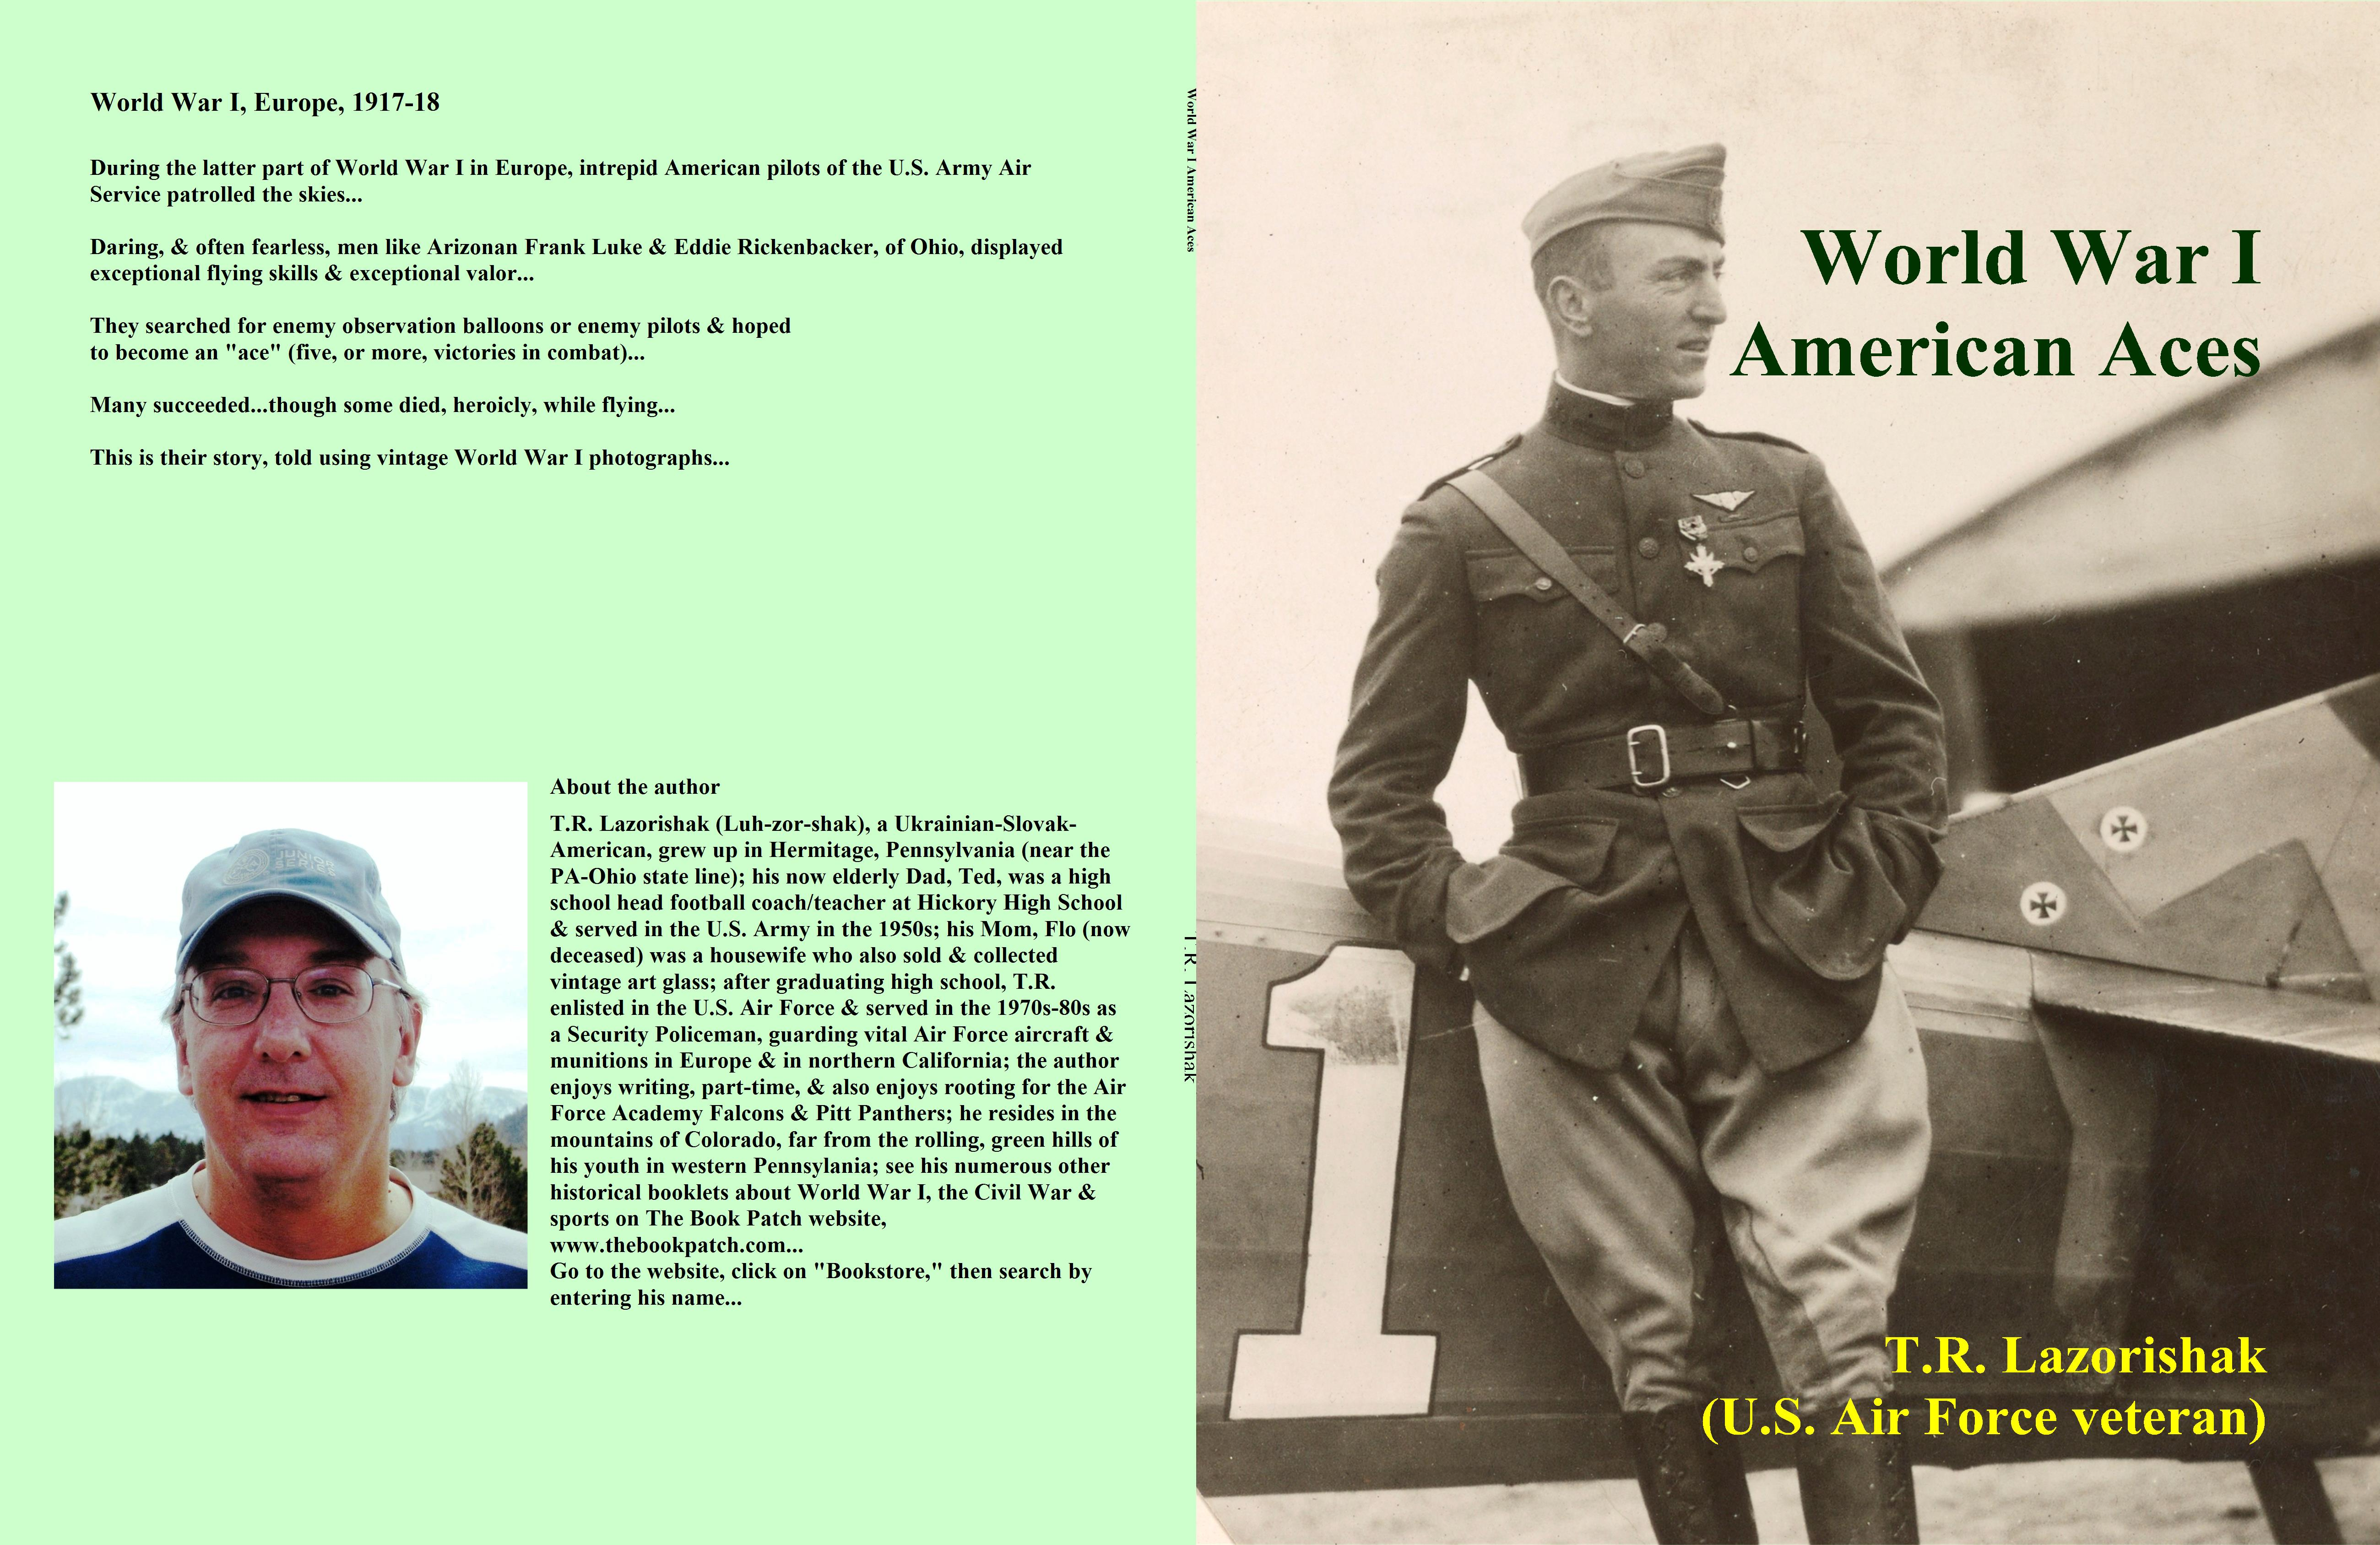 World War I American Aces cover image